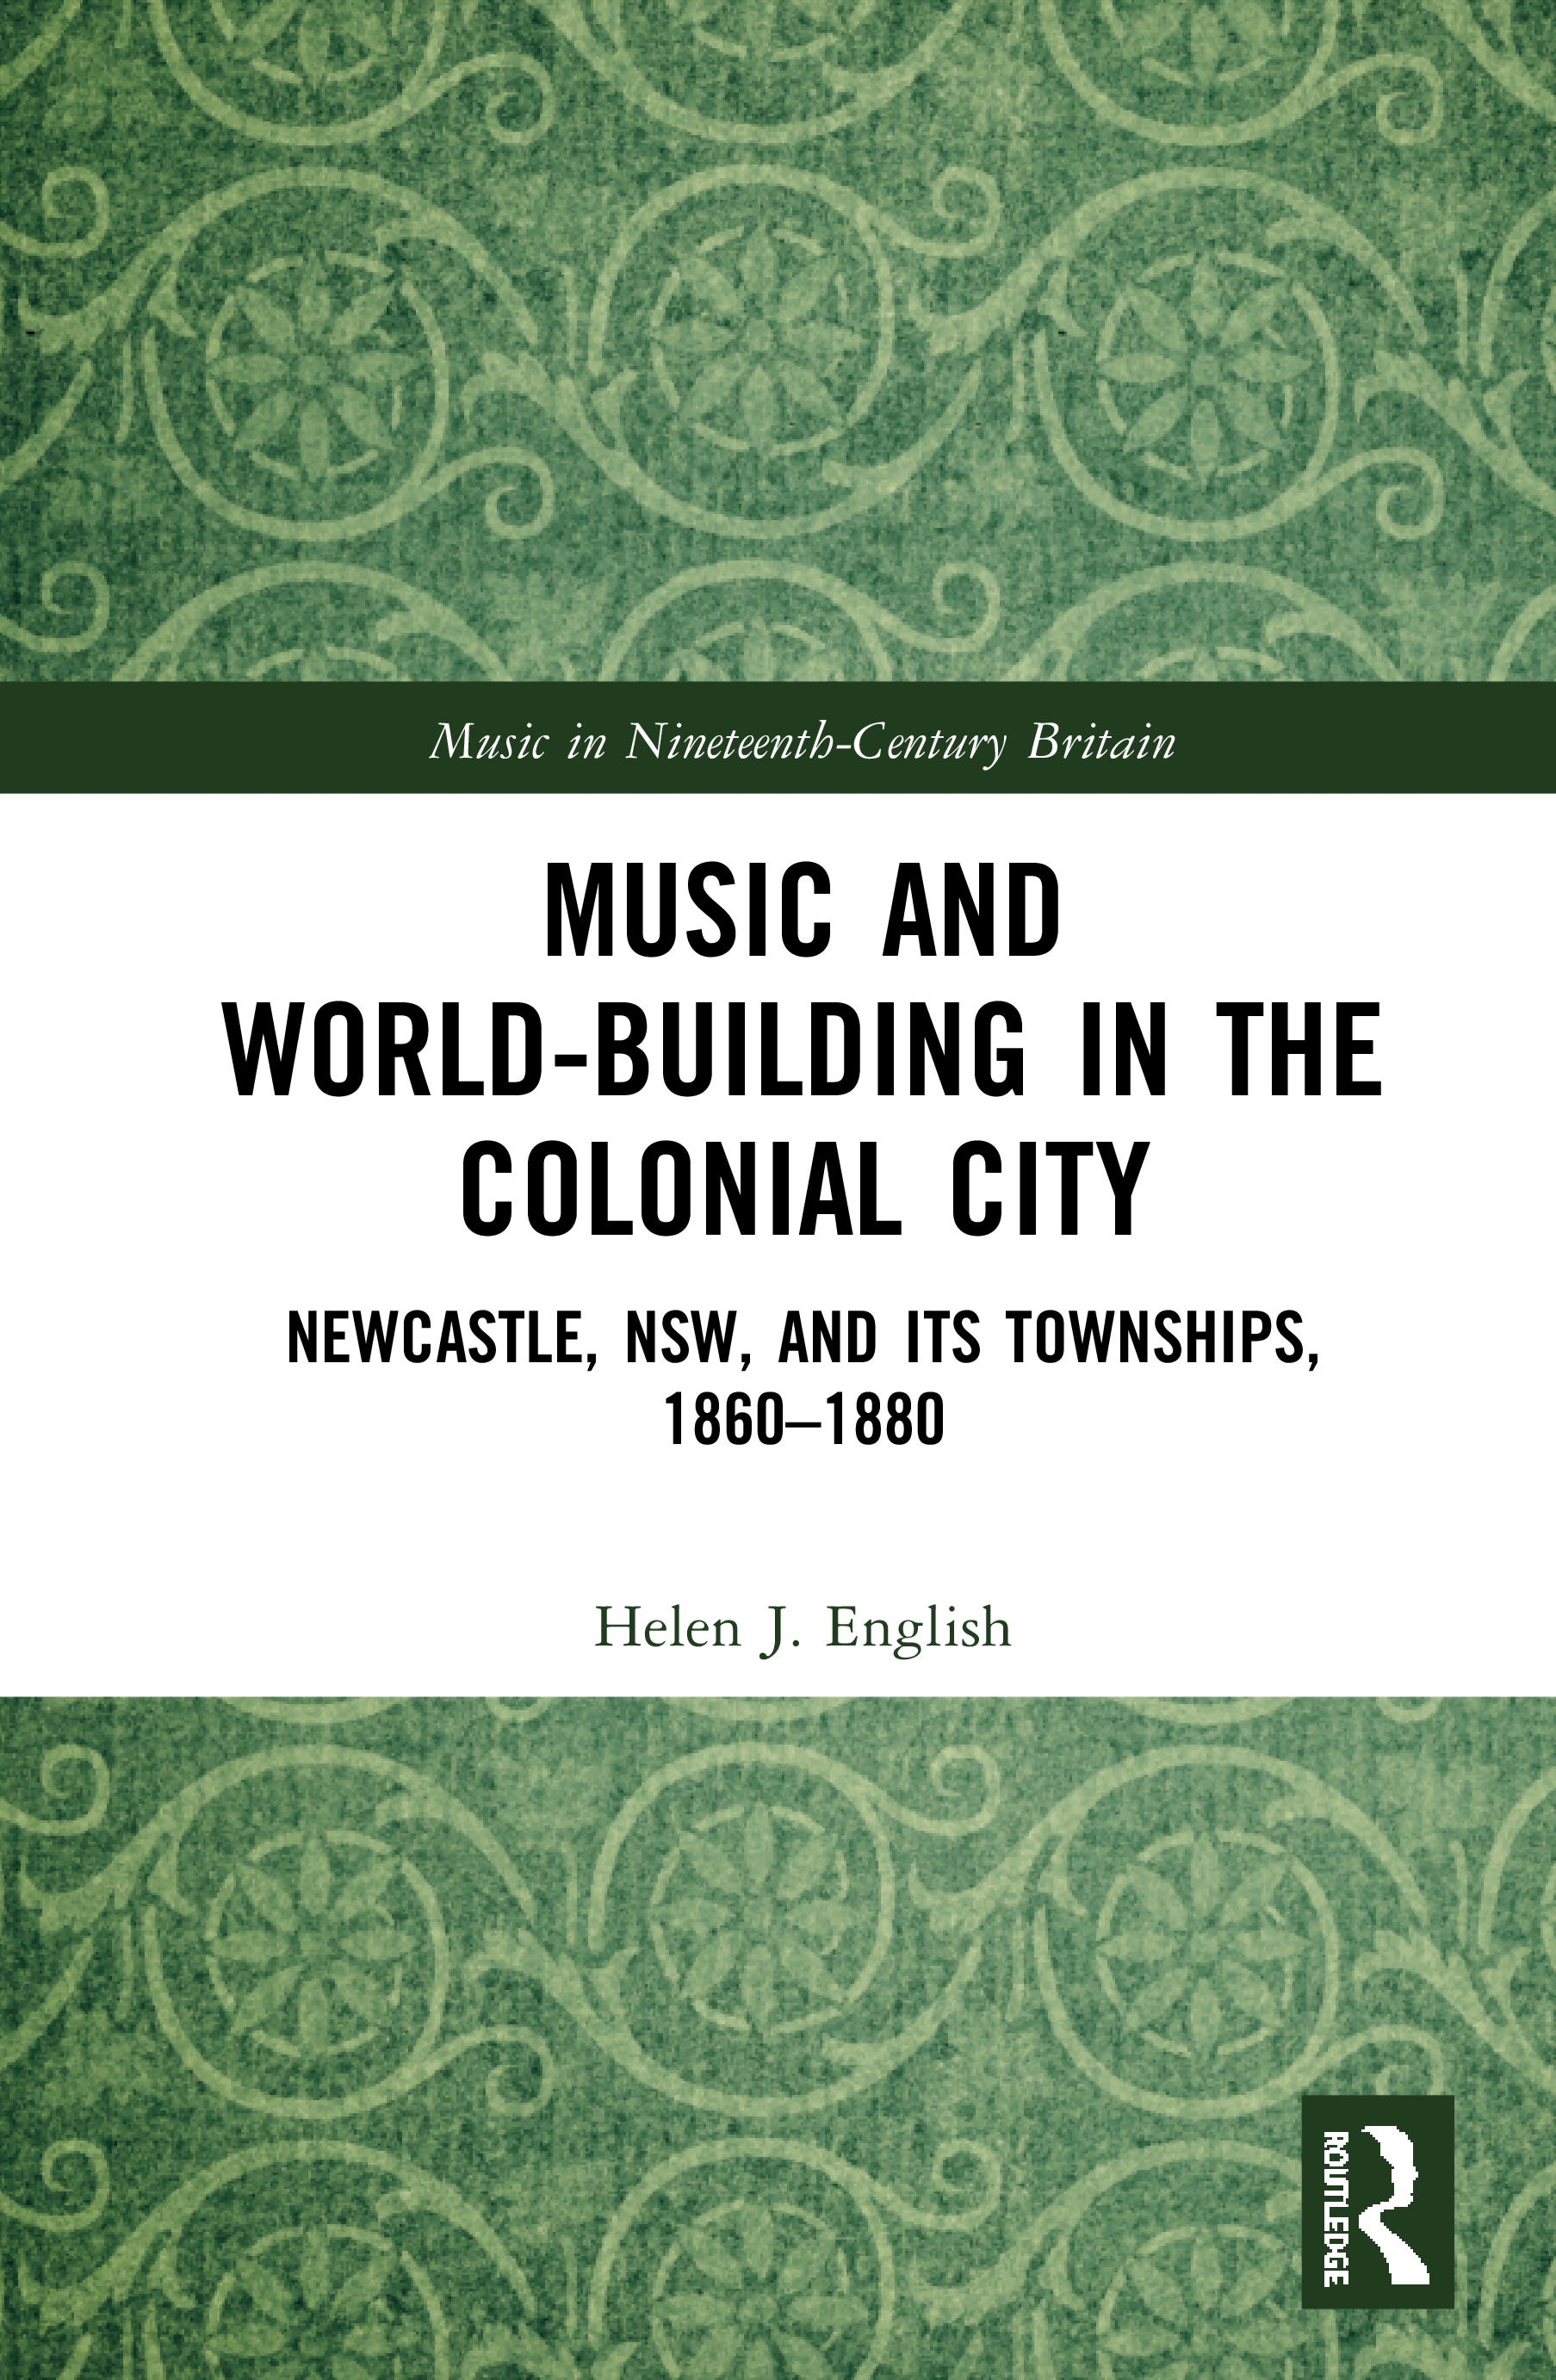 Music and World-Building in the Colonial City: Newcastle, NSW, and its Townships, 1860-1880 book cover